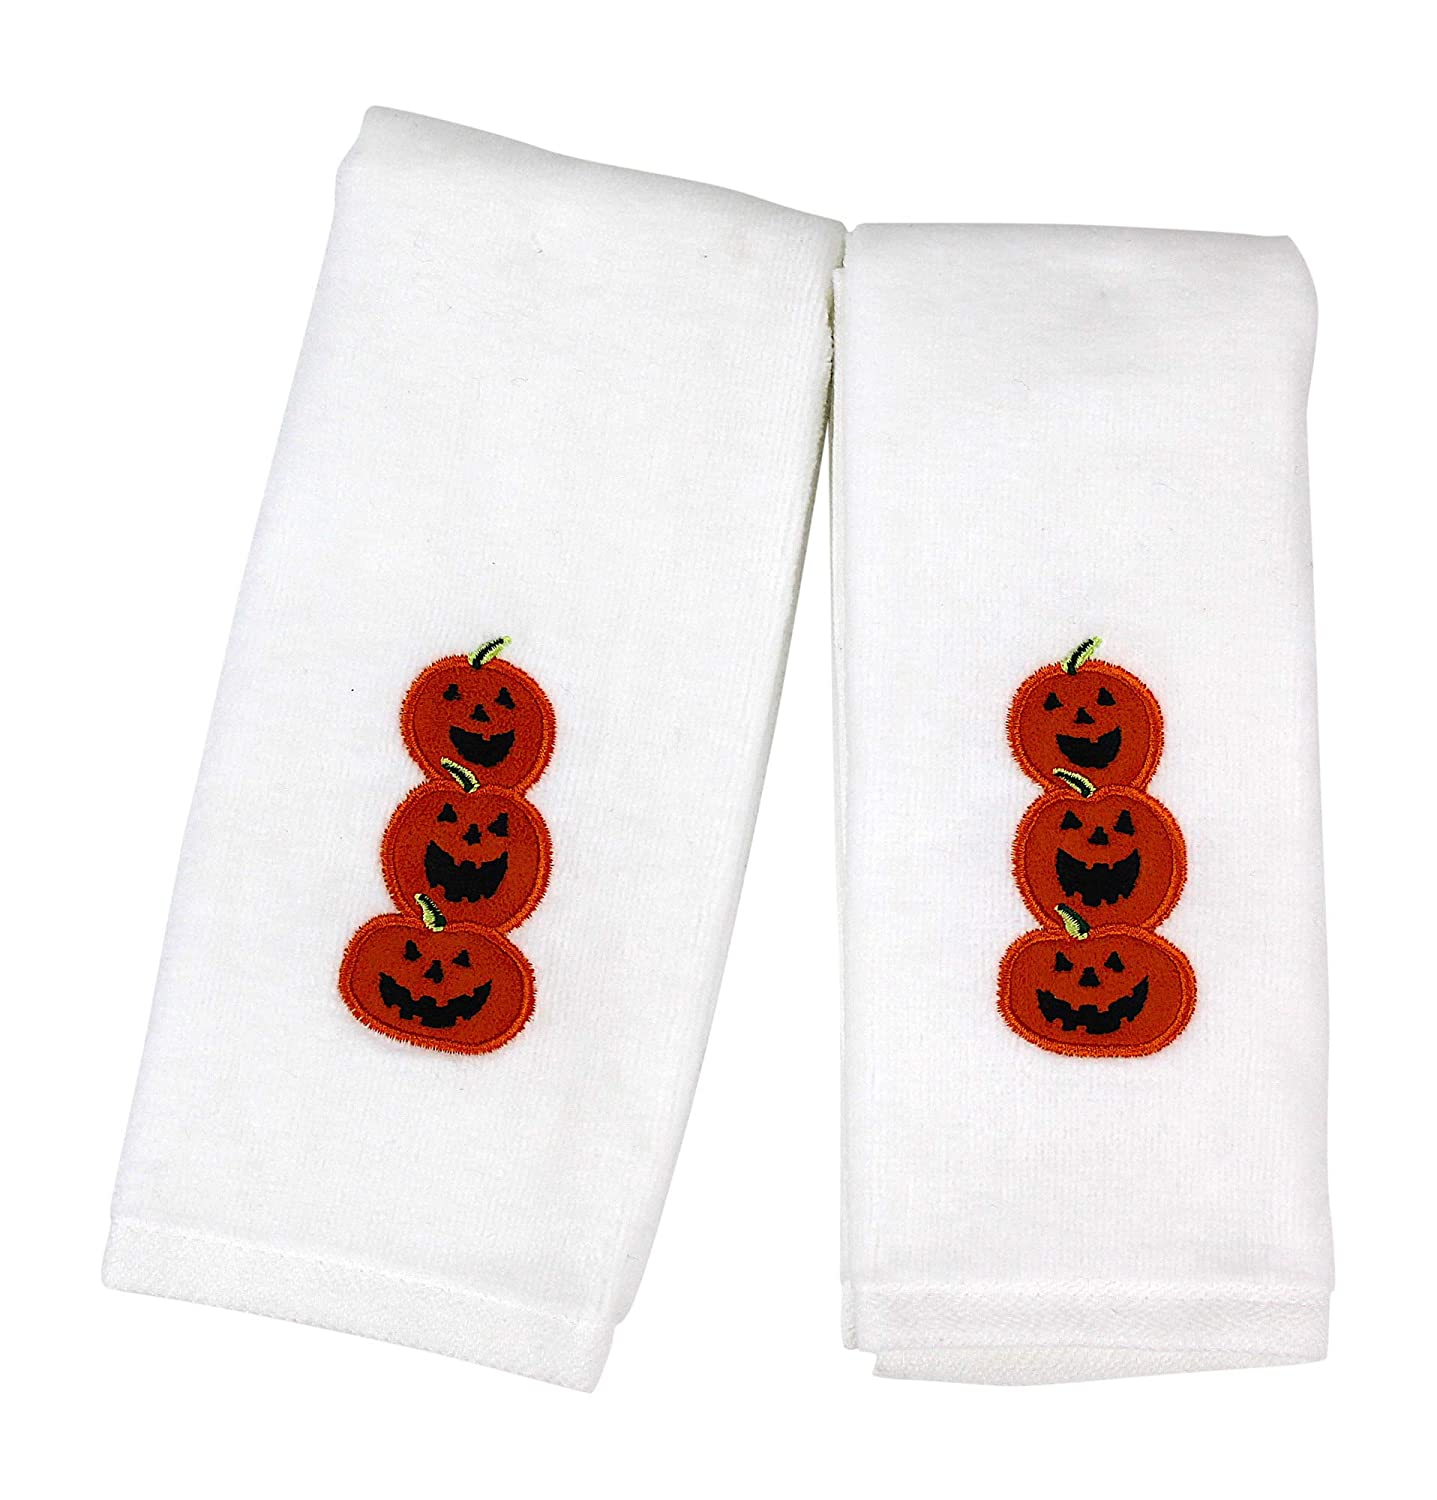 Nantucket Home Decorative Halloween Tip Towels: Plush White Embroidered Cotton Jack O Lantern Pumpkin Design, 2 Piece Set, 11